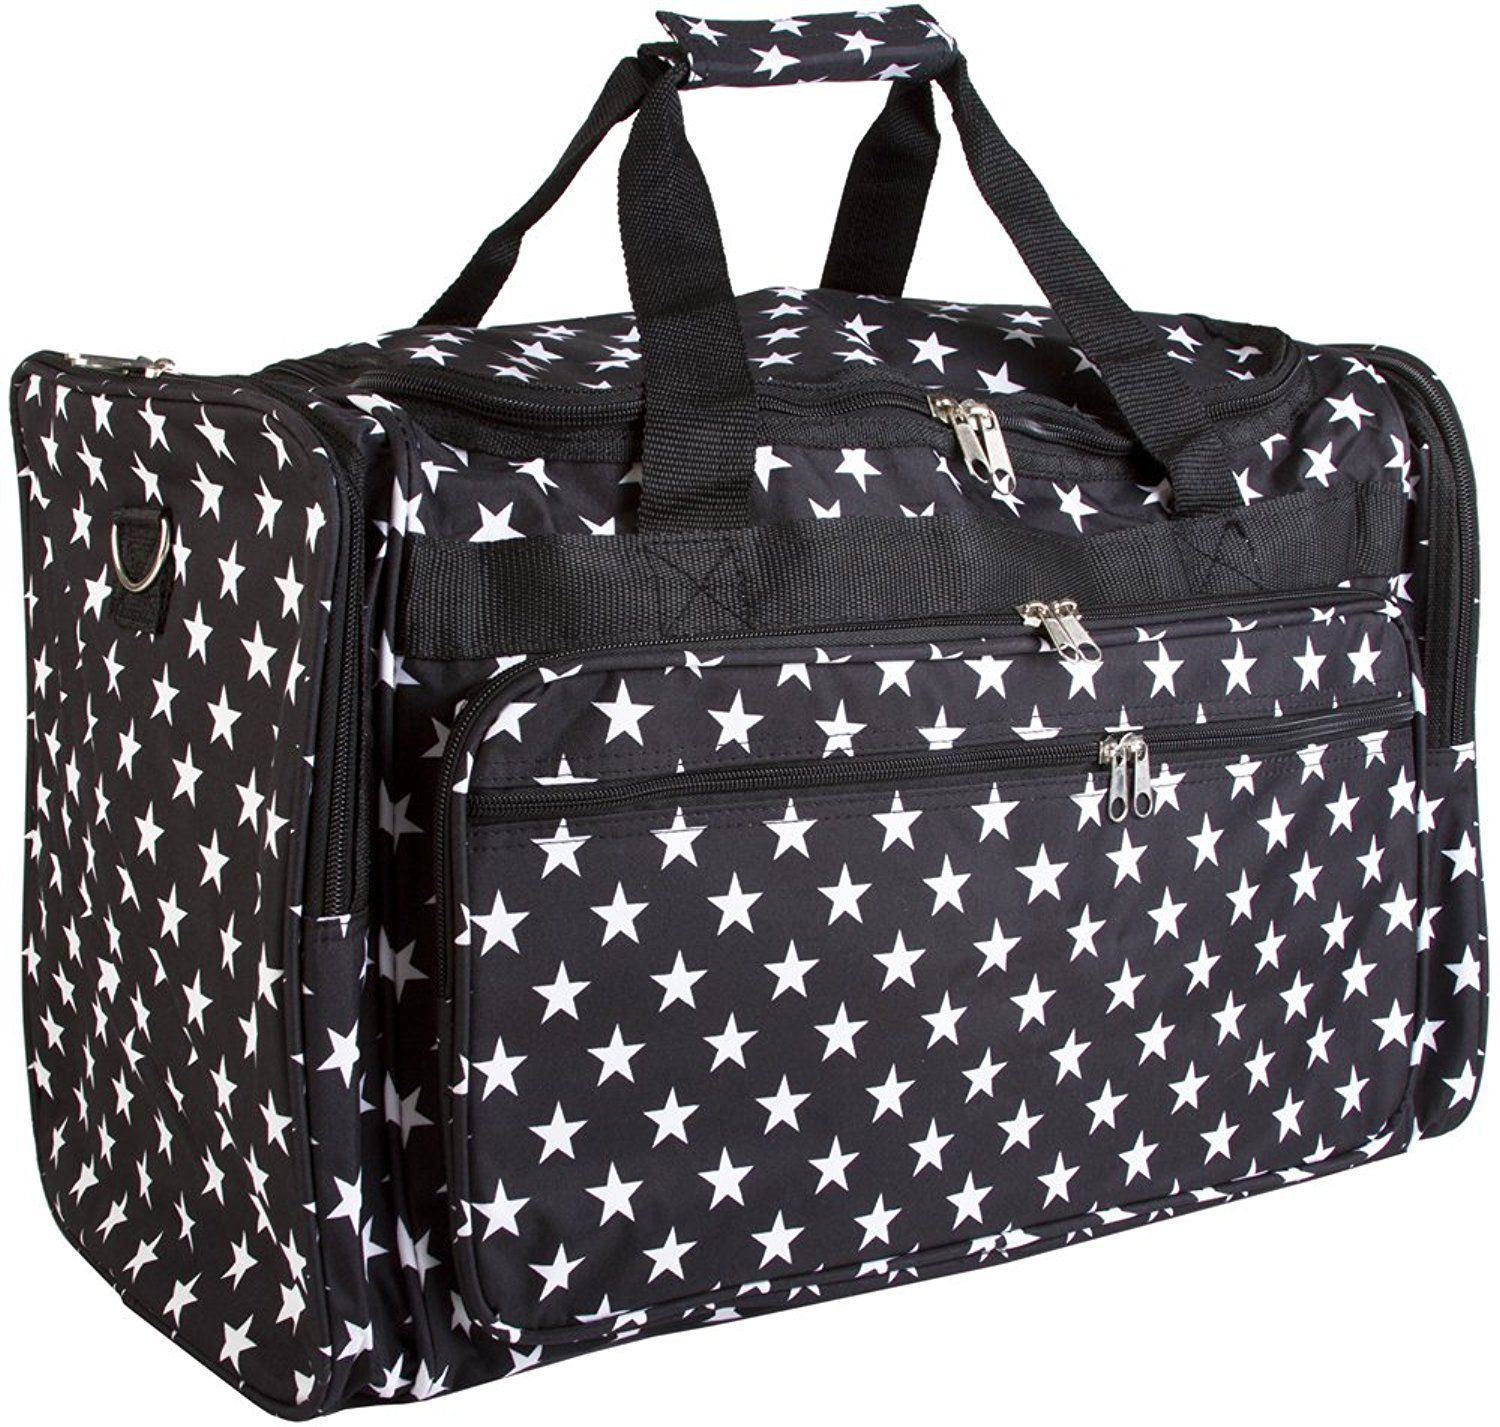 5262a3c4f6b World Traveler Stars 22 in Travel Duffel Bag Black White Stars